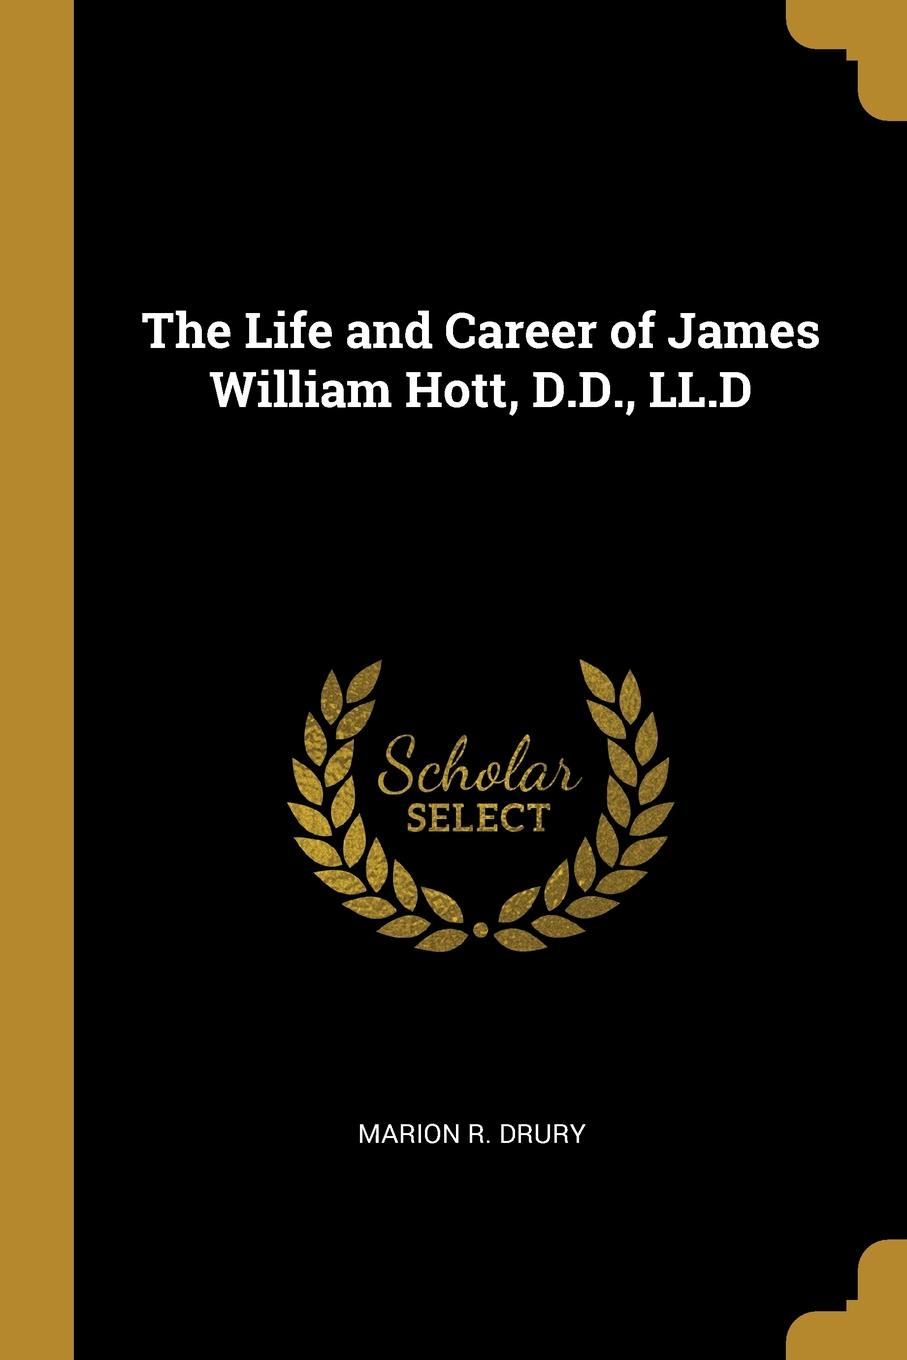 Marion R. Drury. The Life and Career of James William Hott, D.D., LL.D